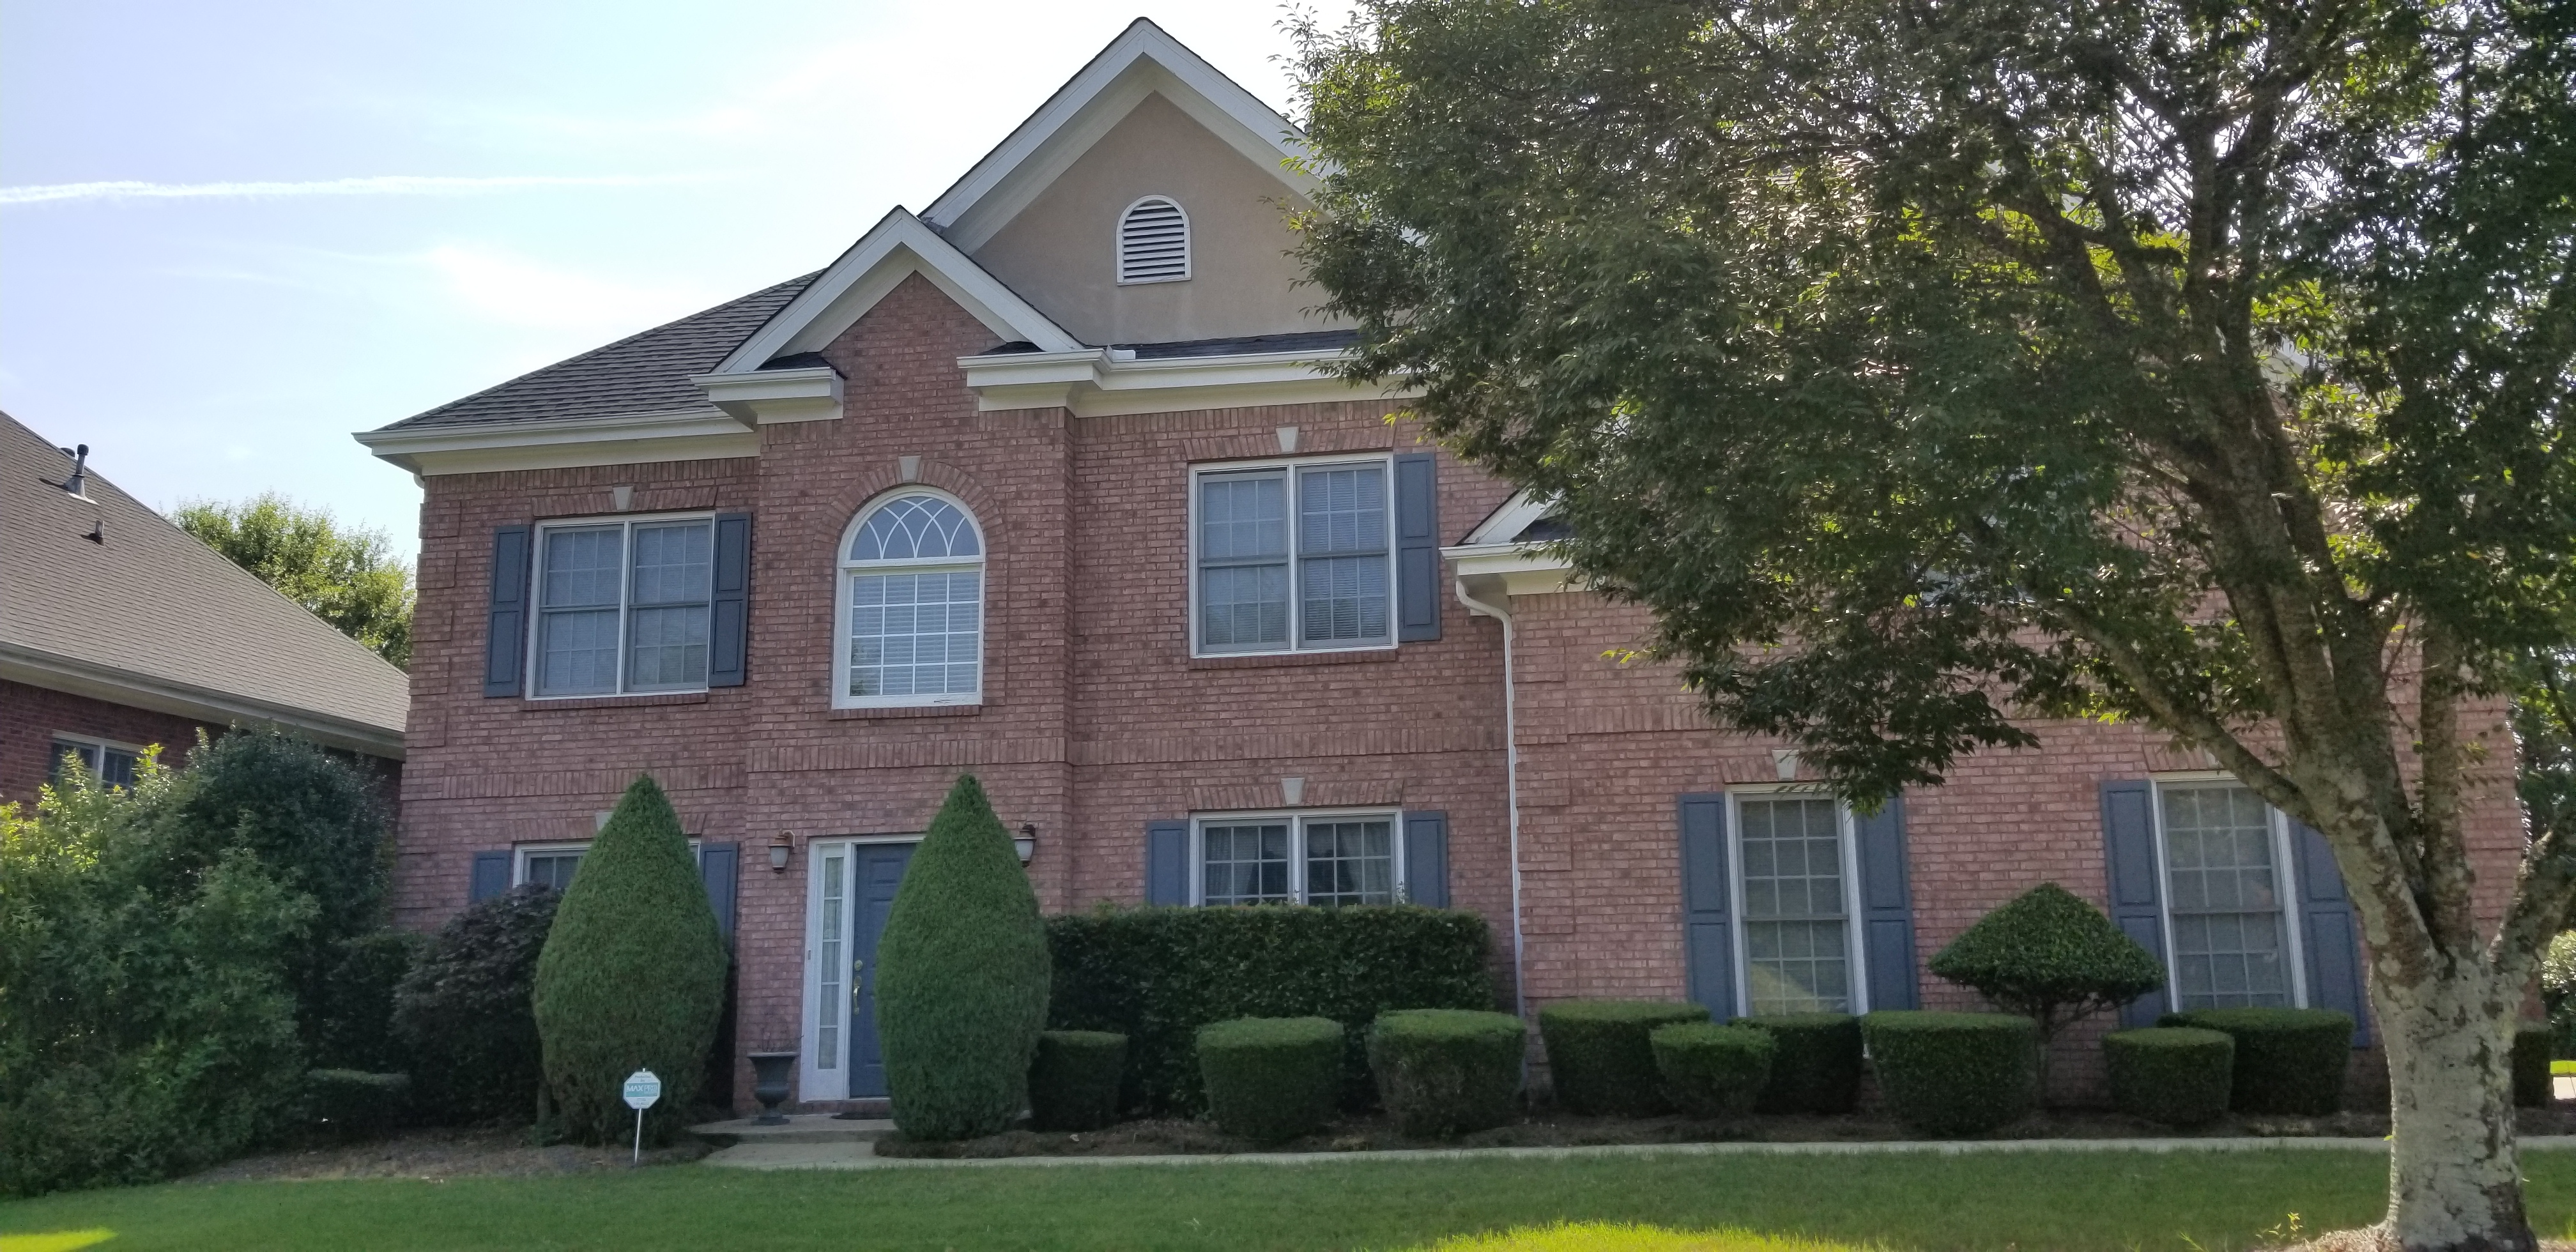 5 BR/4 BA Single Family at Johns Creek